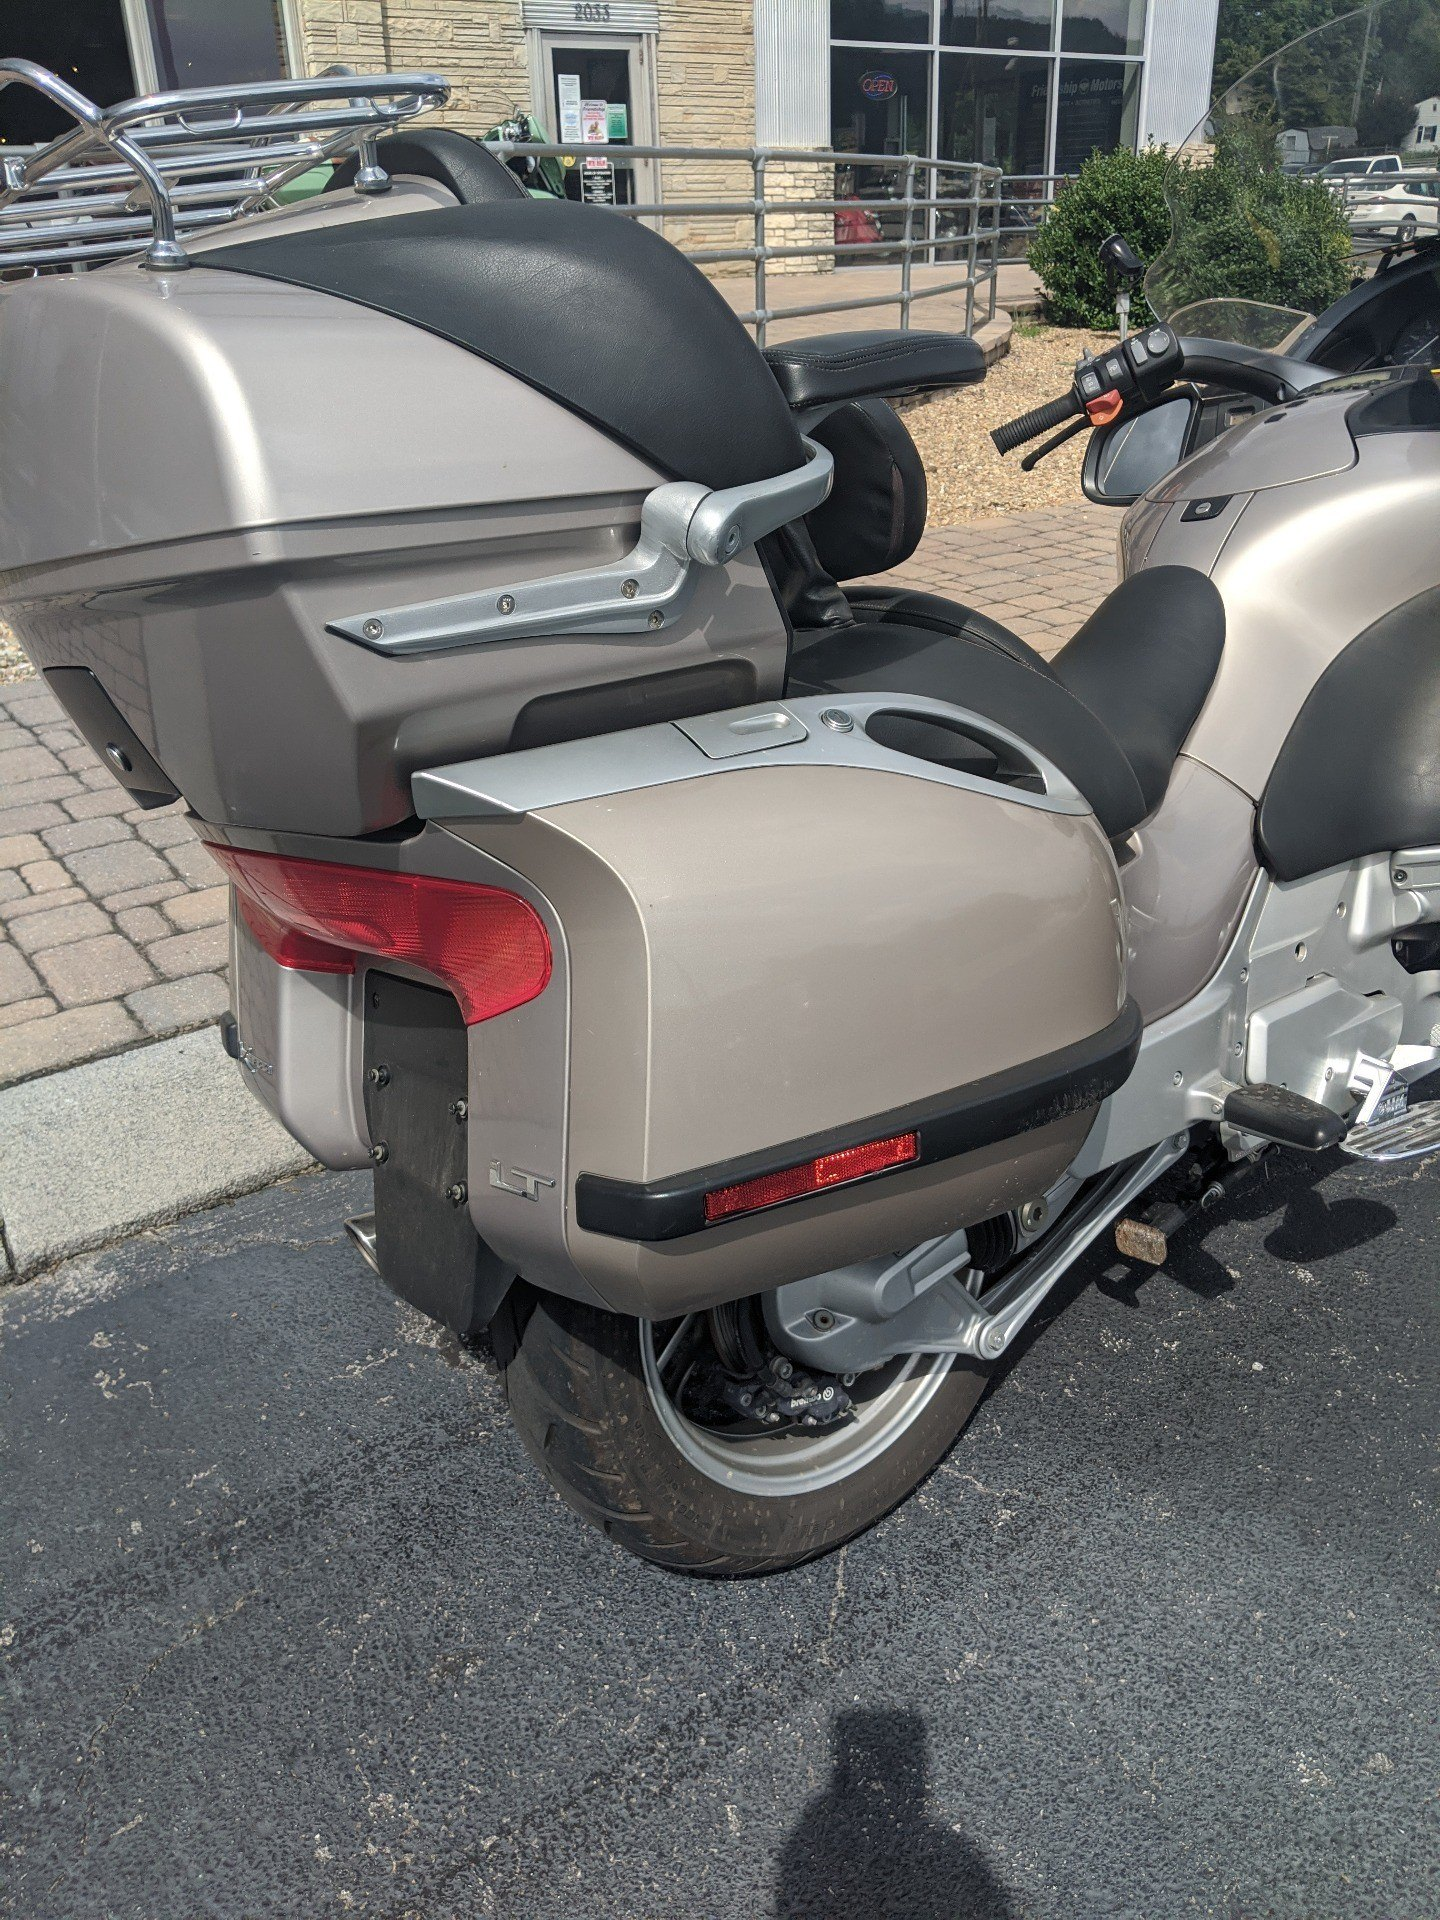 2001 BMW K 1200 LT-I in Bristol, Virginia - Photo 4